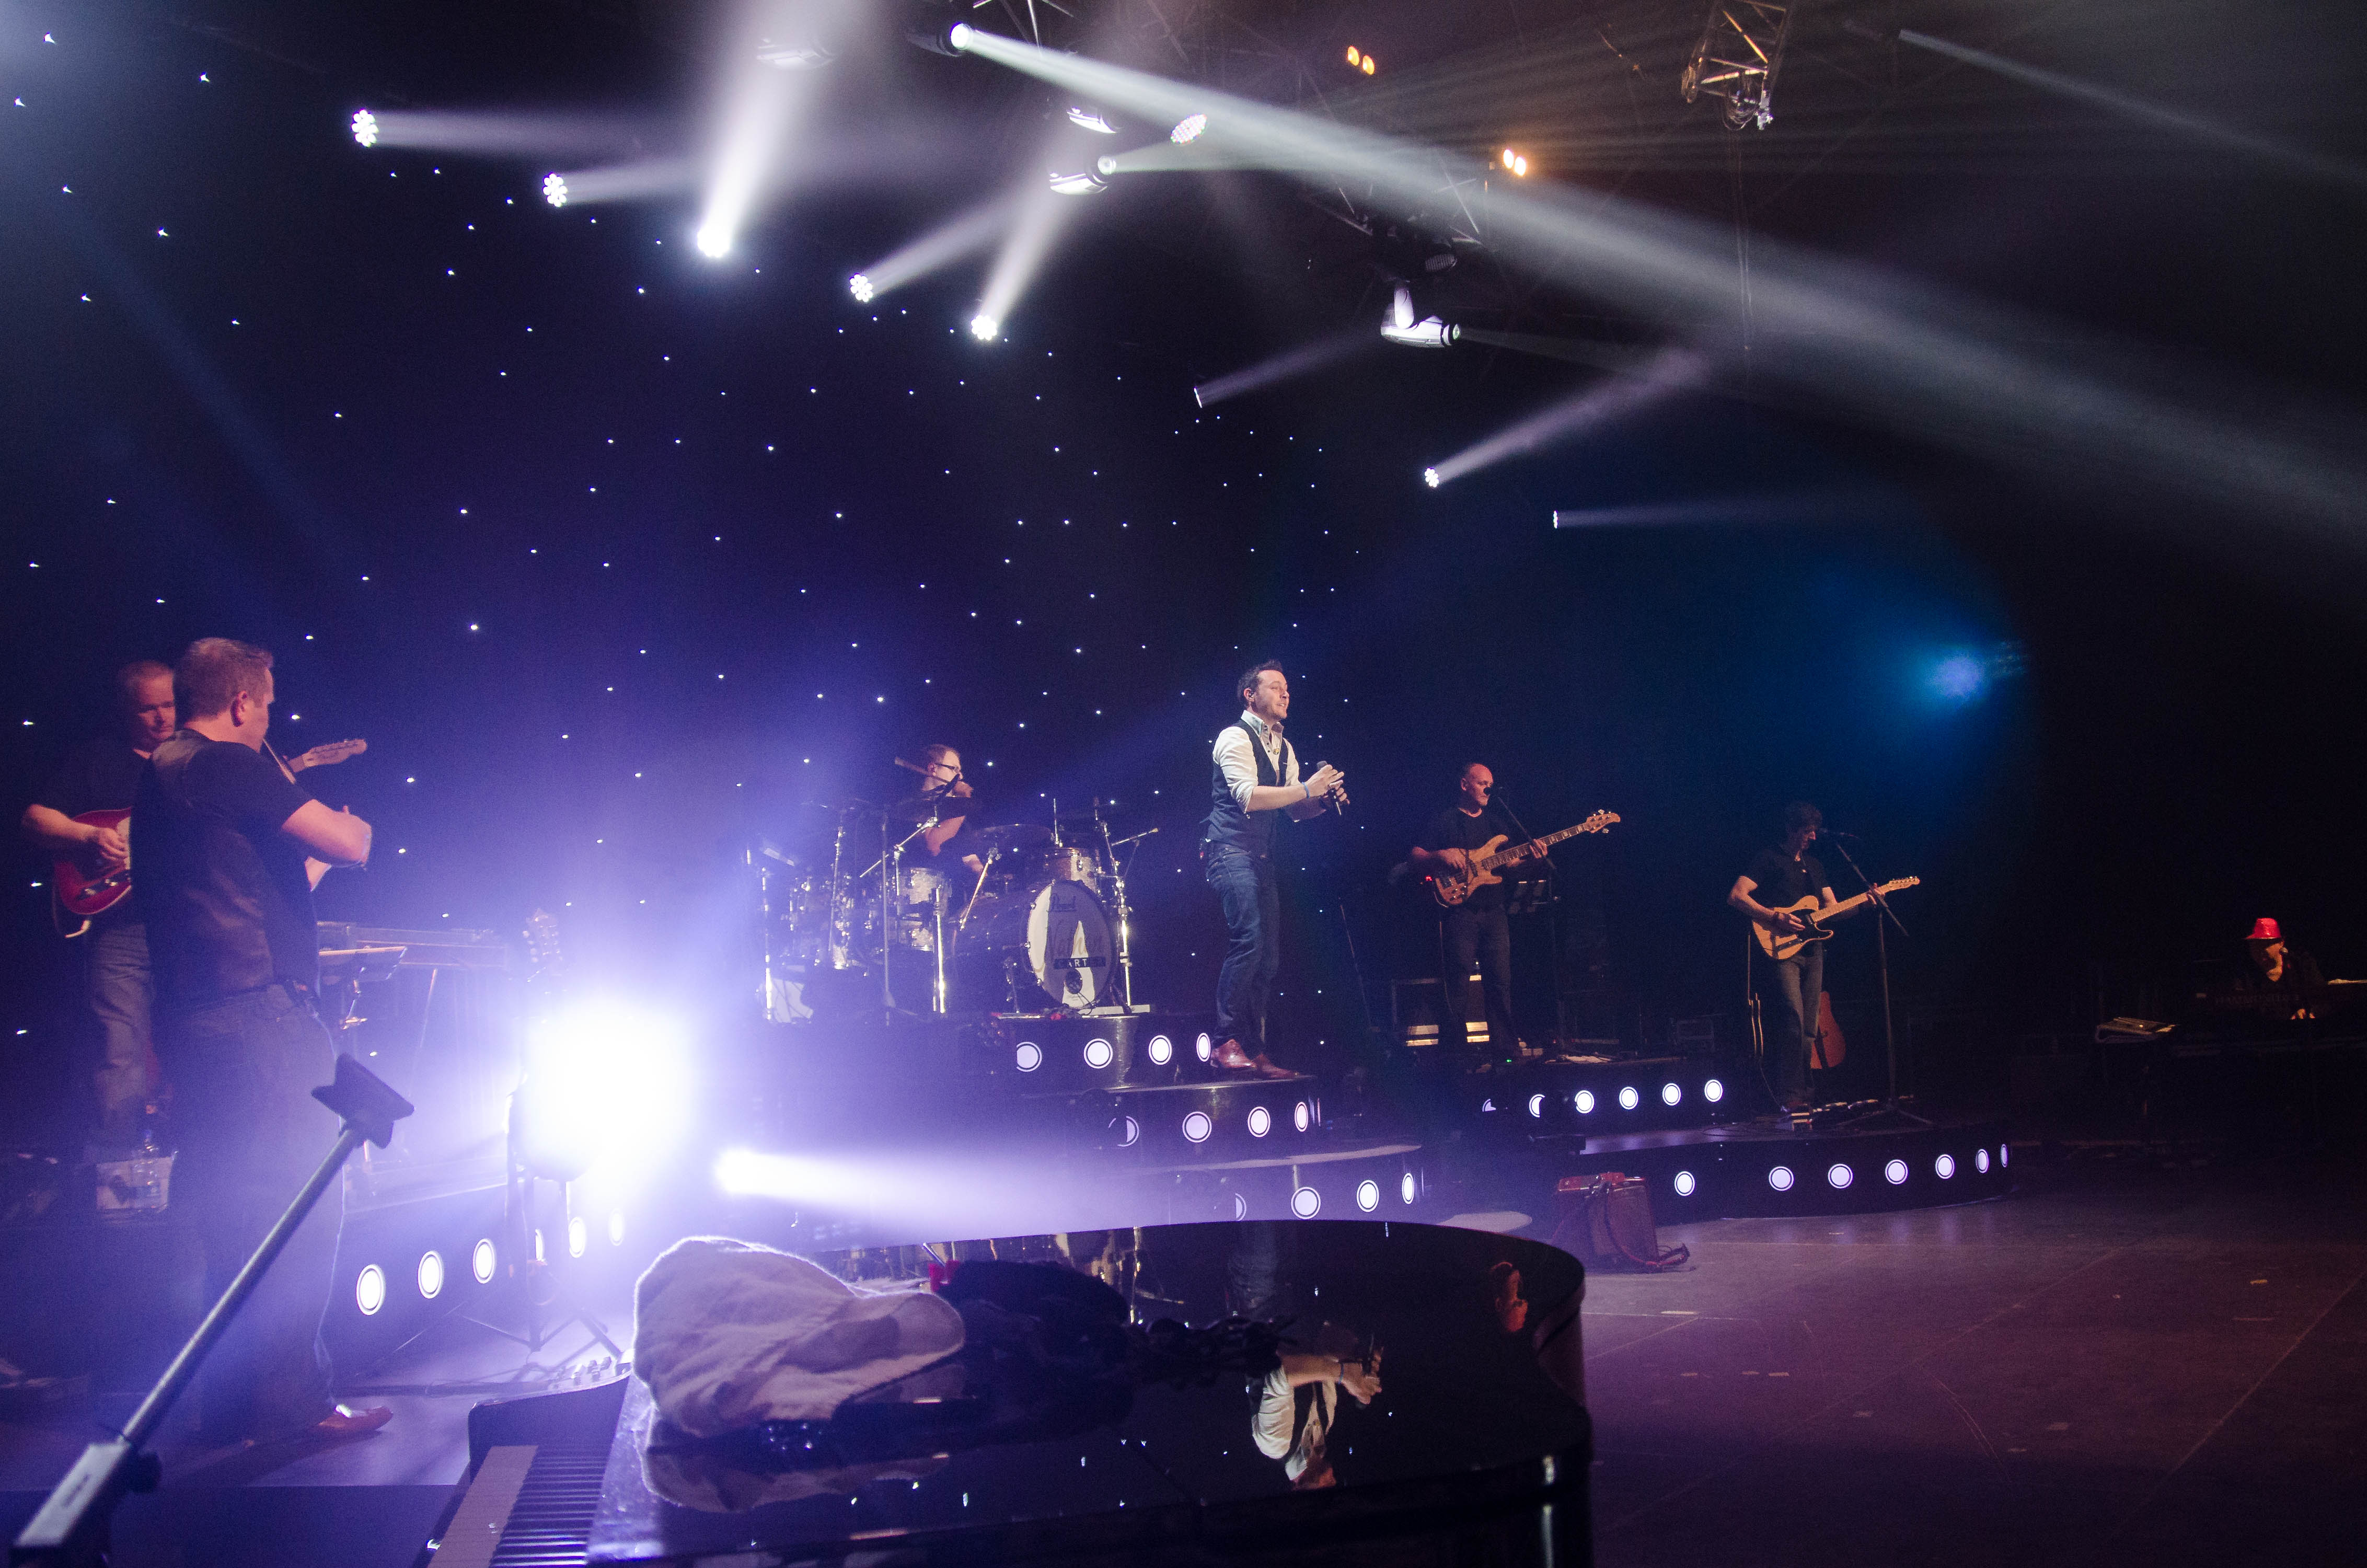 nathan-carter-at-the-marquee-cork-by-sean-smyth-15-6-14-54-of-55